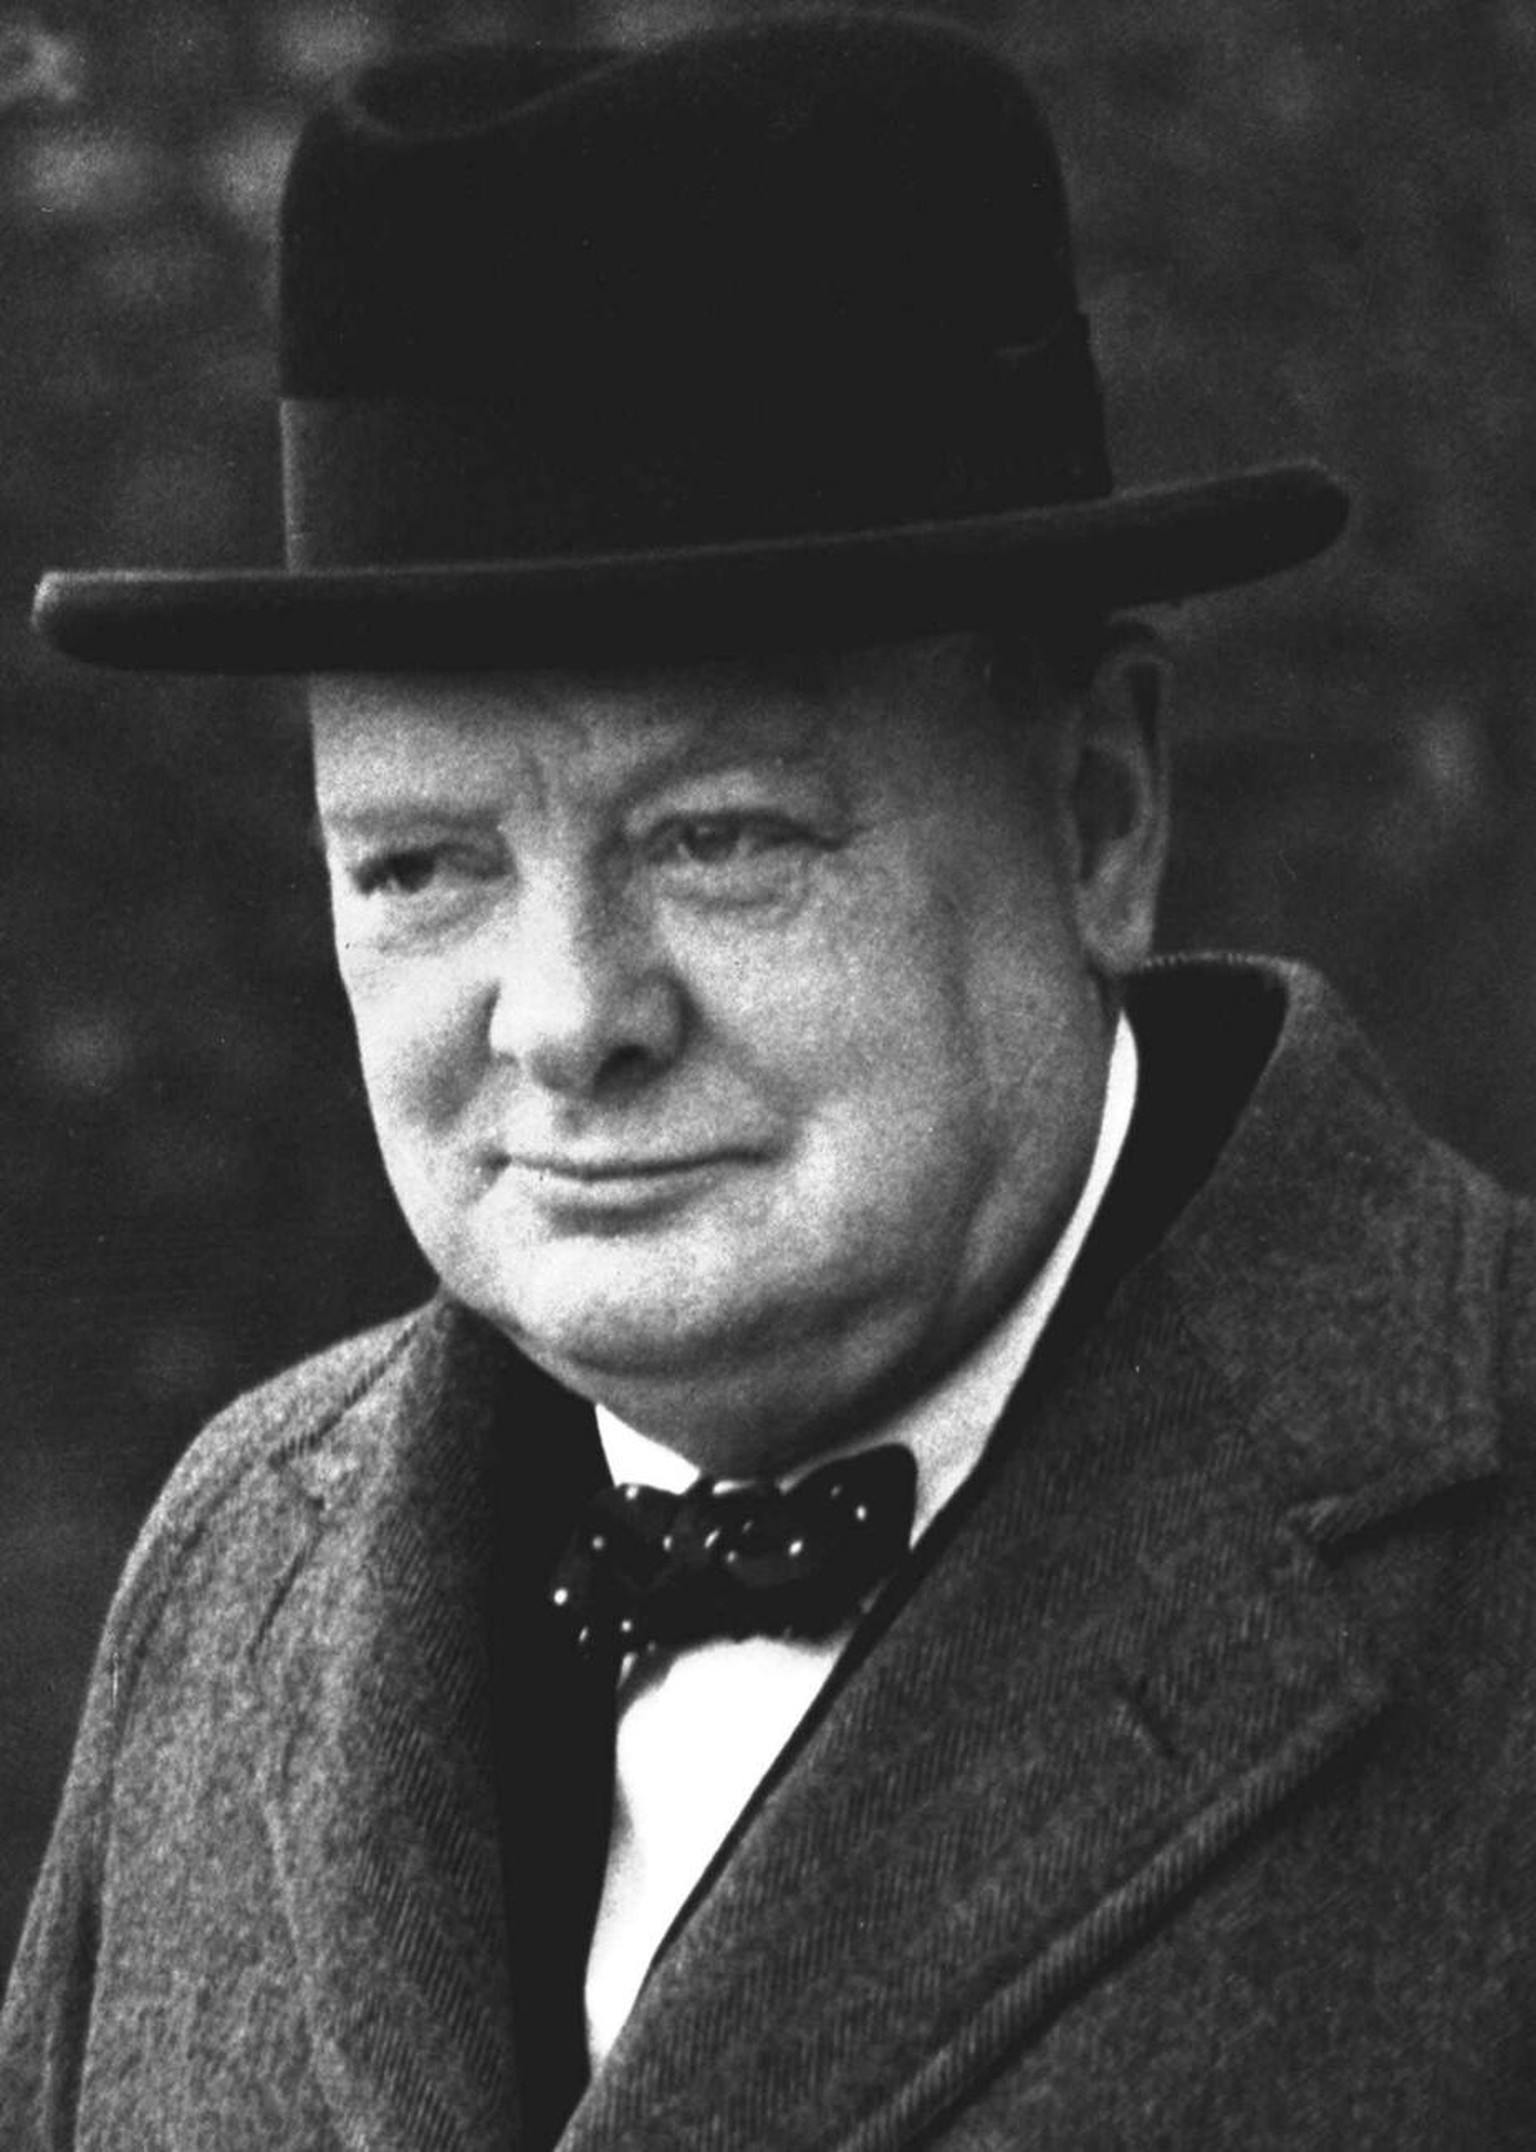 Winston Churchill is pictured in London, England, in this March 28, 1940, photo. Westminster College, located in Fulton, Mo., will renovate its Winston Churchill museum with all new exhibits to be completed during the summer of 2005. Churchill, the former British prime minister, gave his legendary Iron Curtain speech at the Presbyterian college on March 5, 1946, forever linking the central Missouri school with a defining historic moment. (KEYSTONE/AP Photo/Str) ===